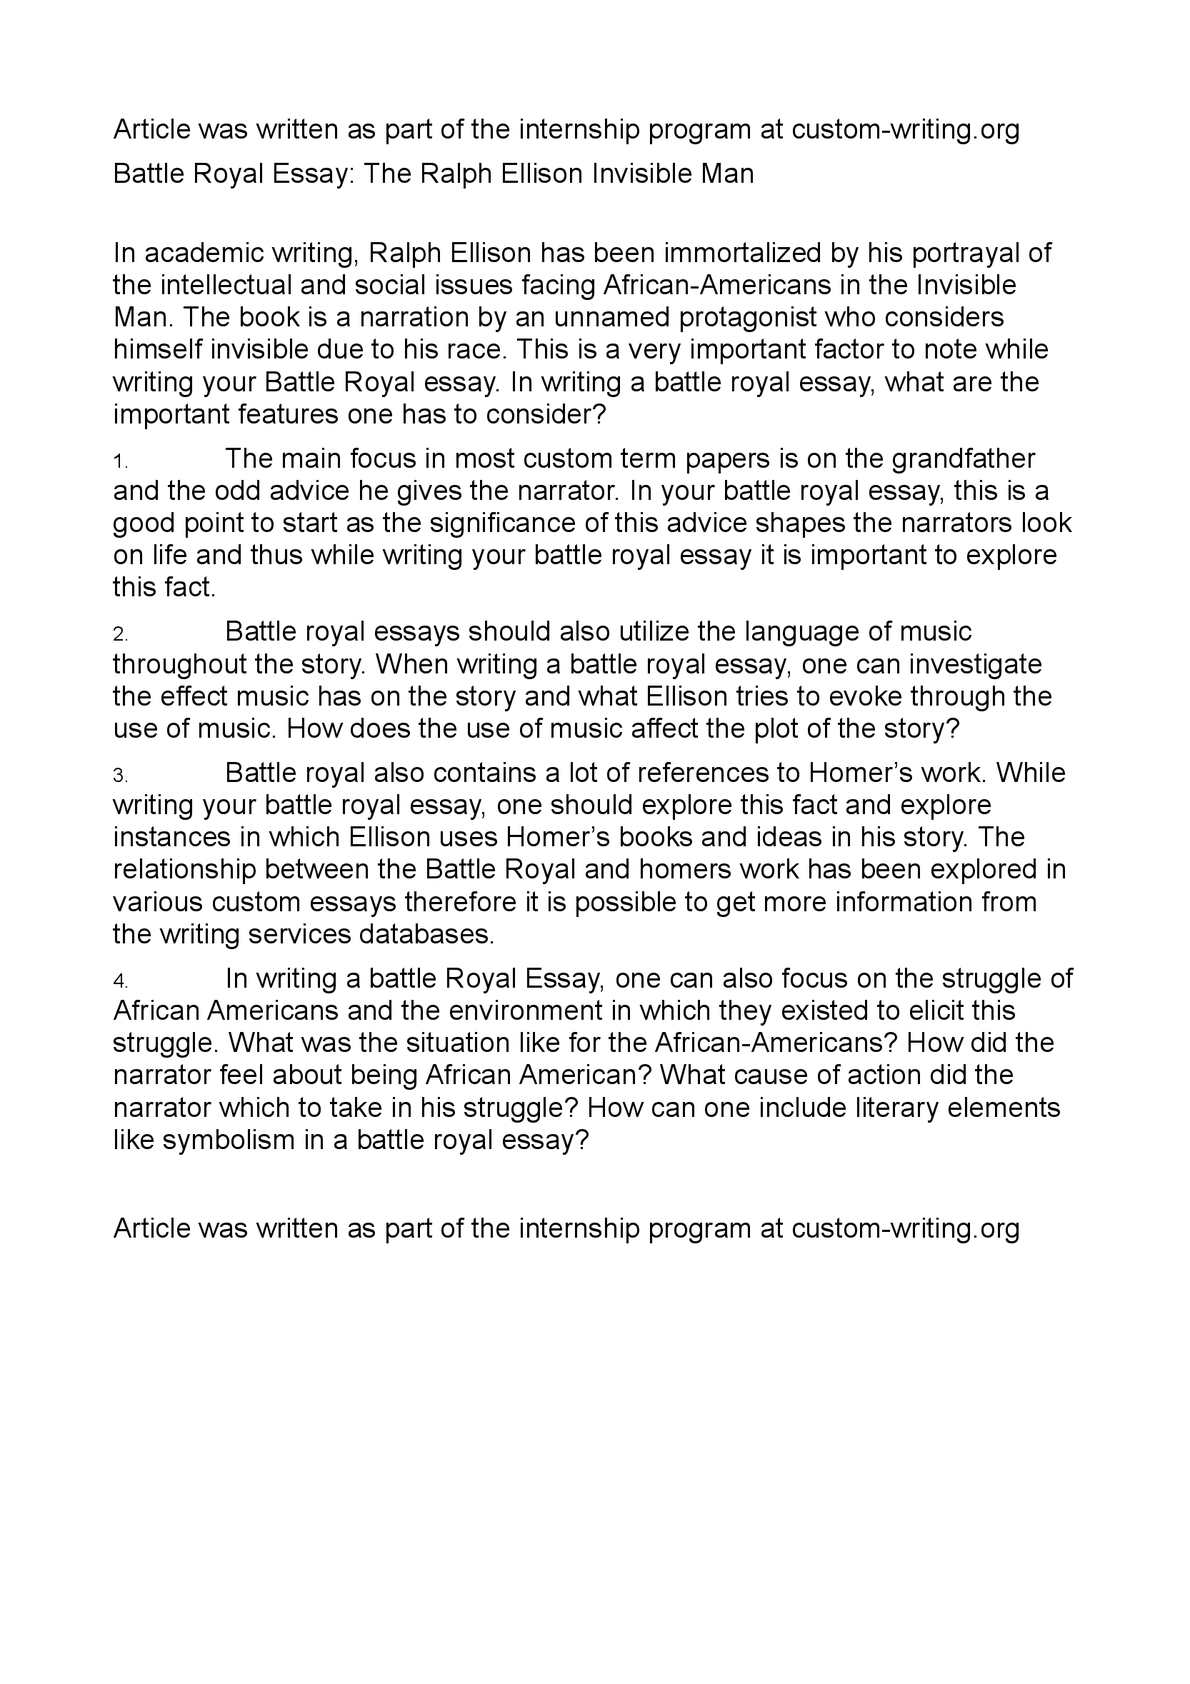 008 Battle Royal Essay Questions Summary Royale Research Paper Topics Argumentative20 Striking Literature American Ideas English History Full